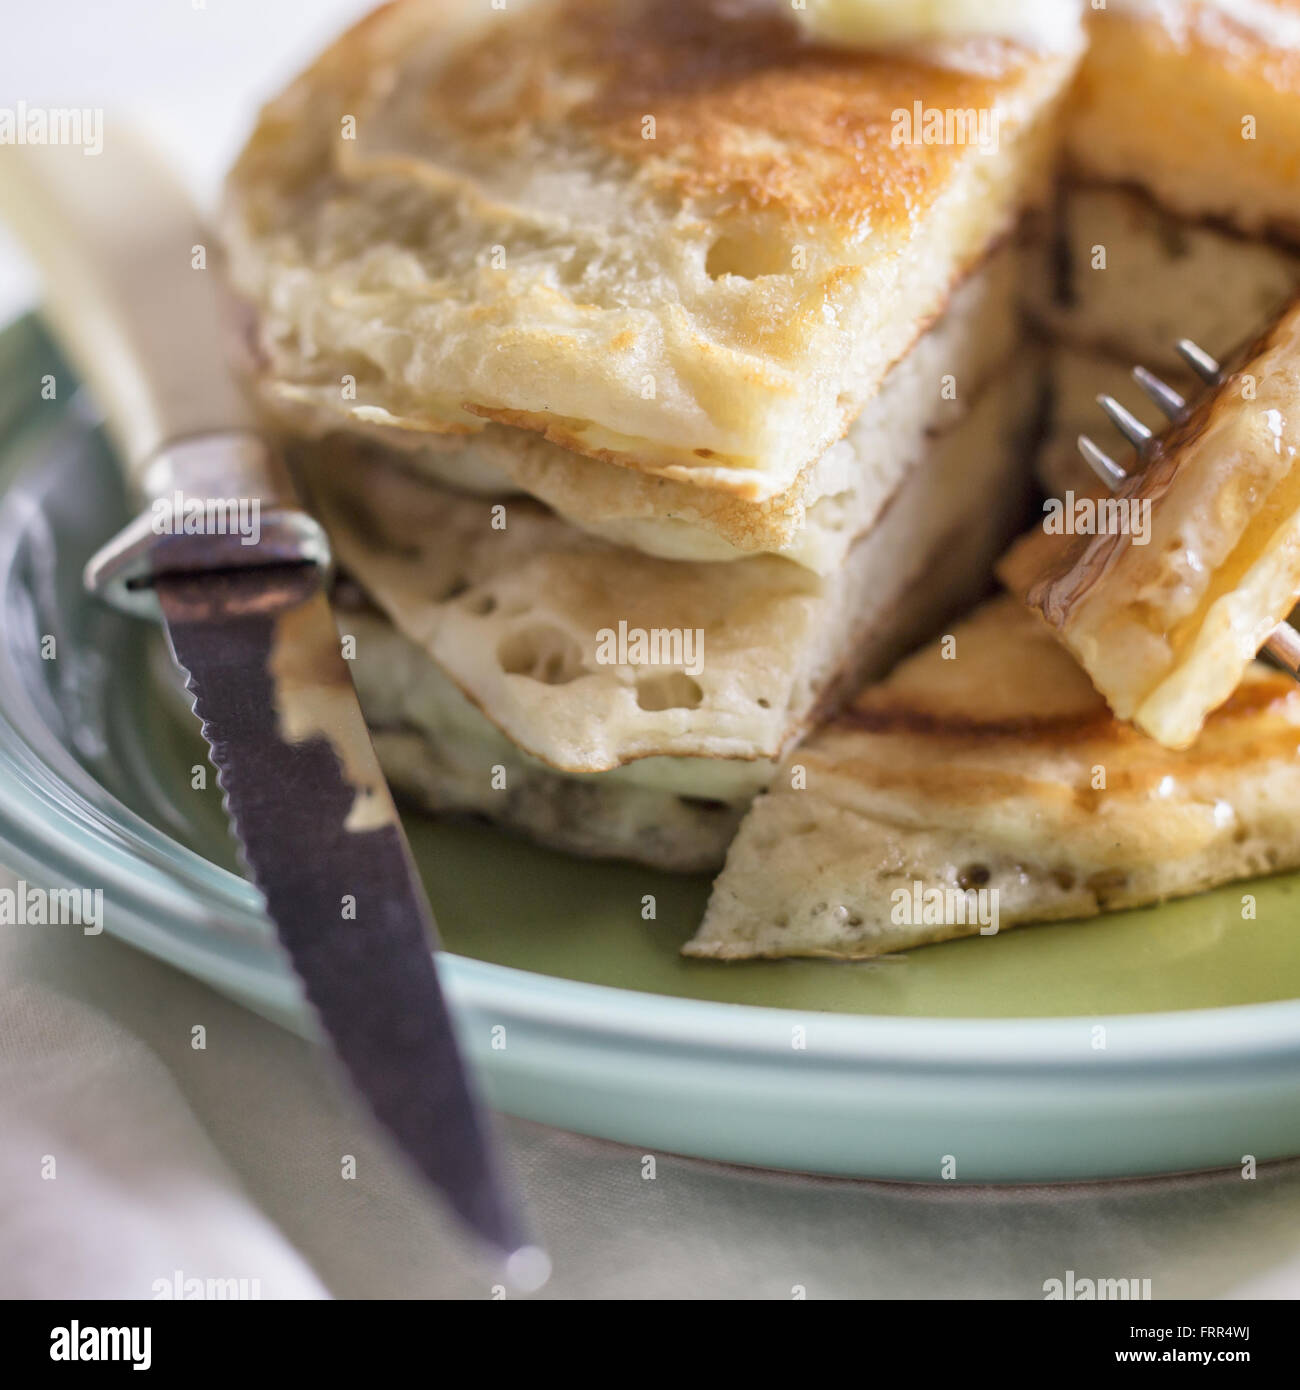 A small stack of sliced pancakes with butter and syrup. - Stock Image